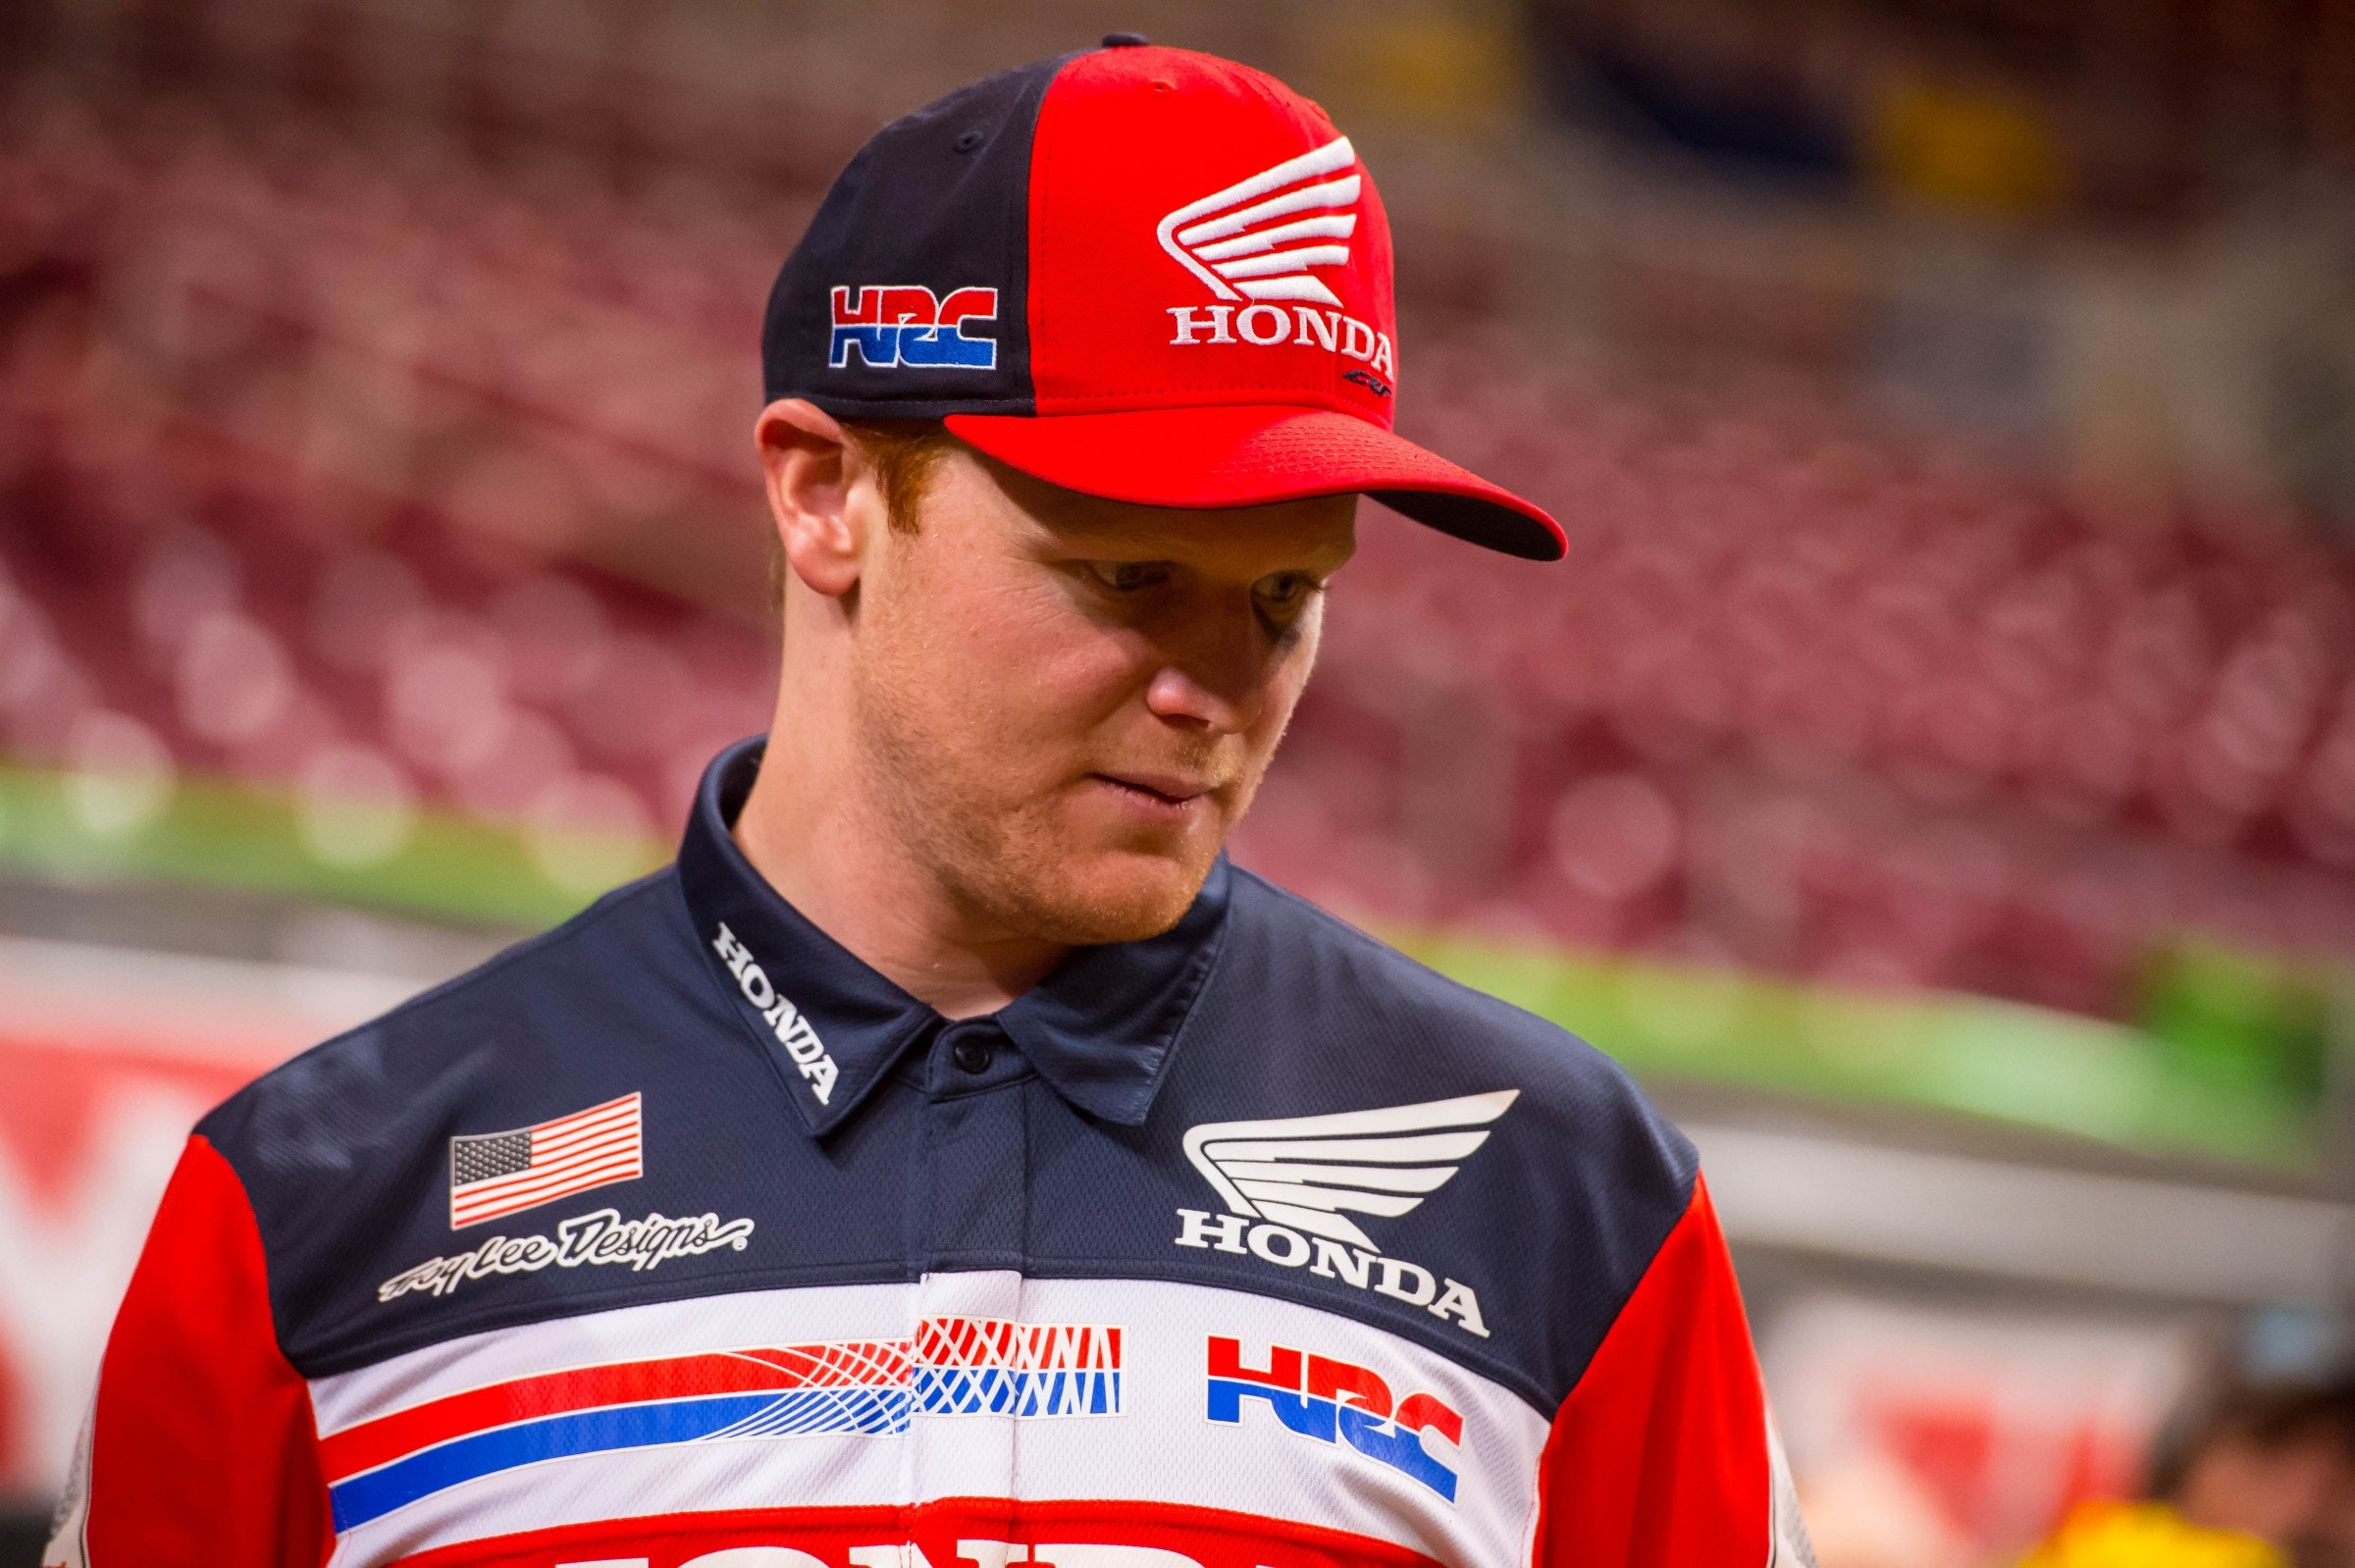 Trey Canard is still searching for his first podium of 2016.